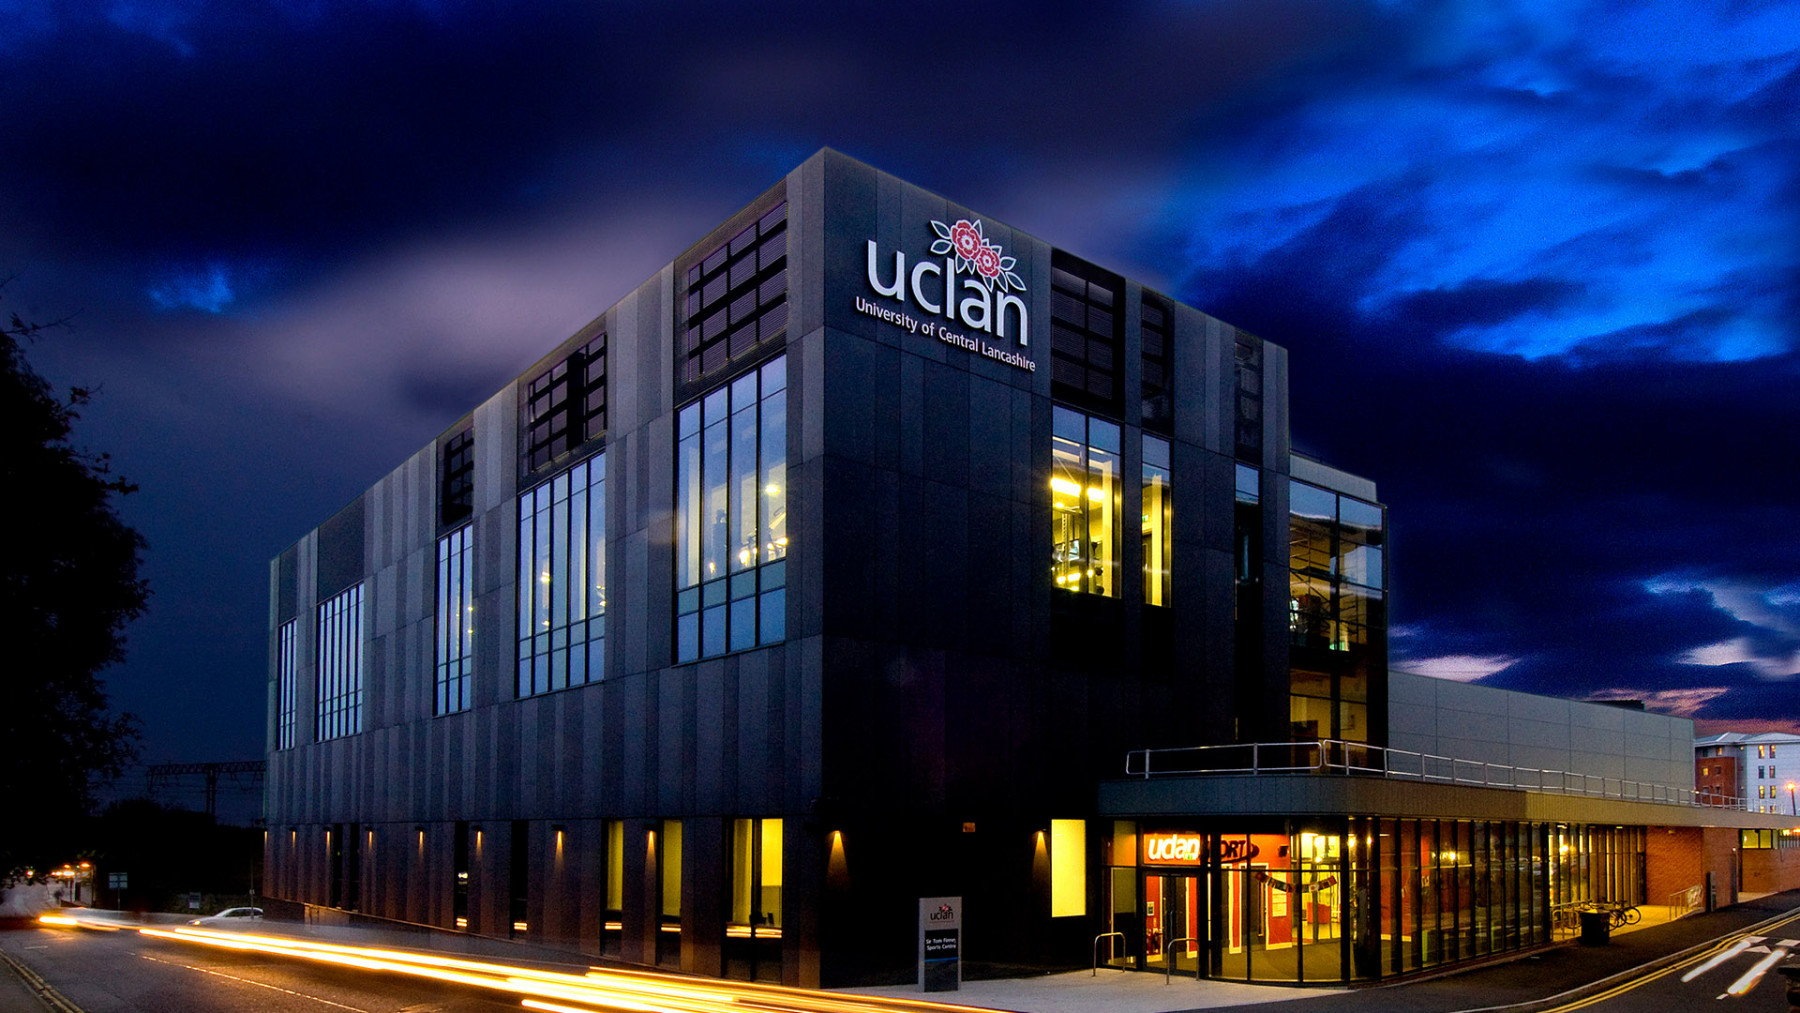 uclan student accommodation university of central lancashire